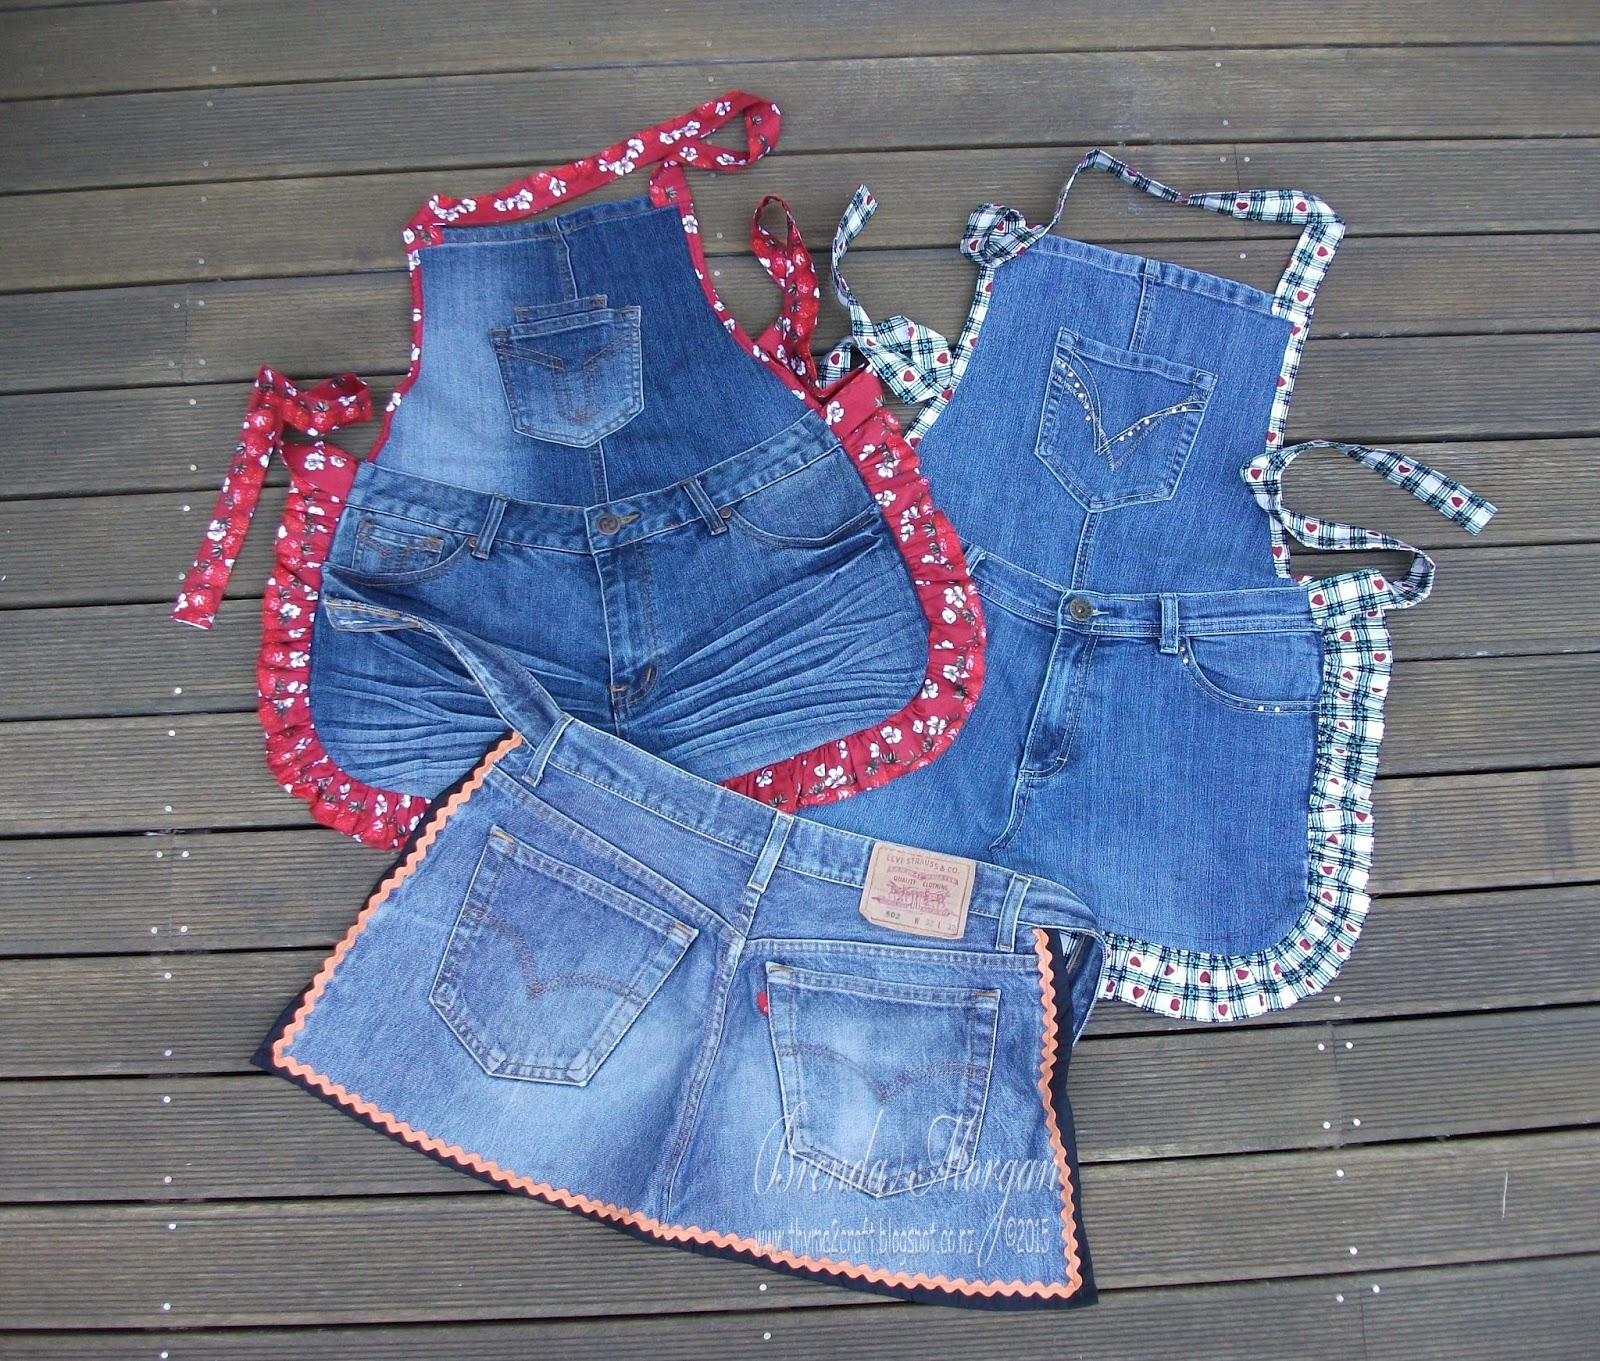 Thyme 2 craft recycled denim jeans for Denim craft ideas